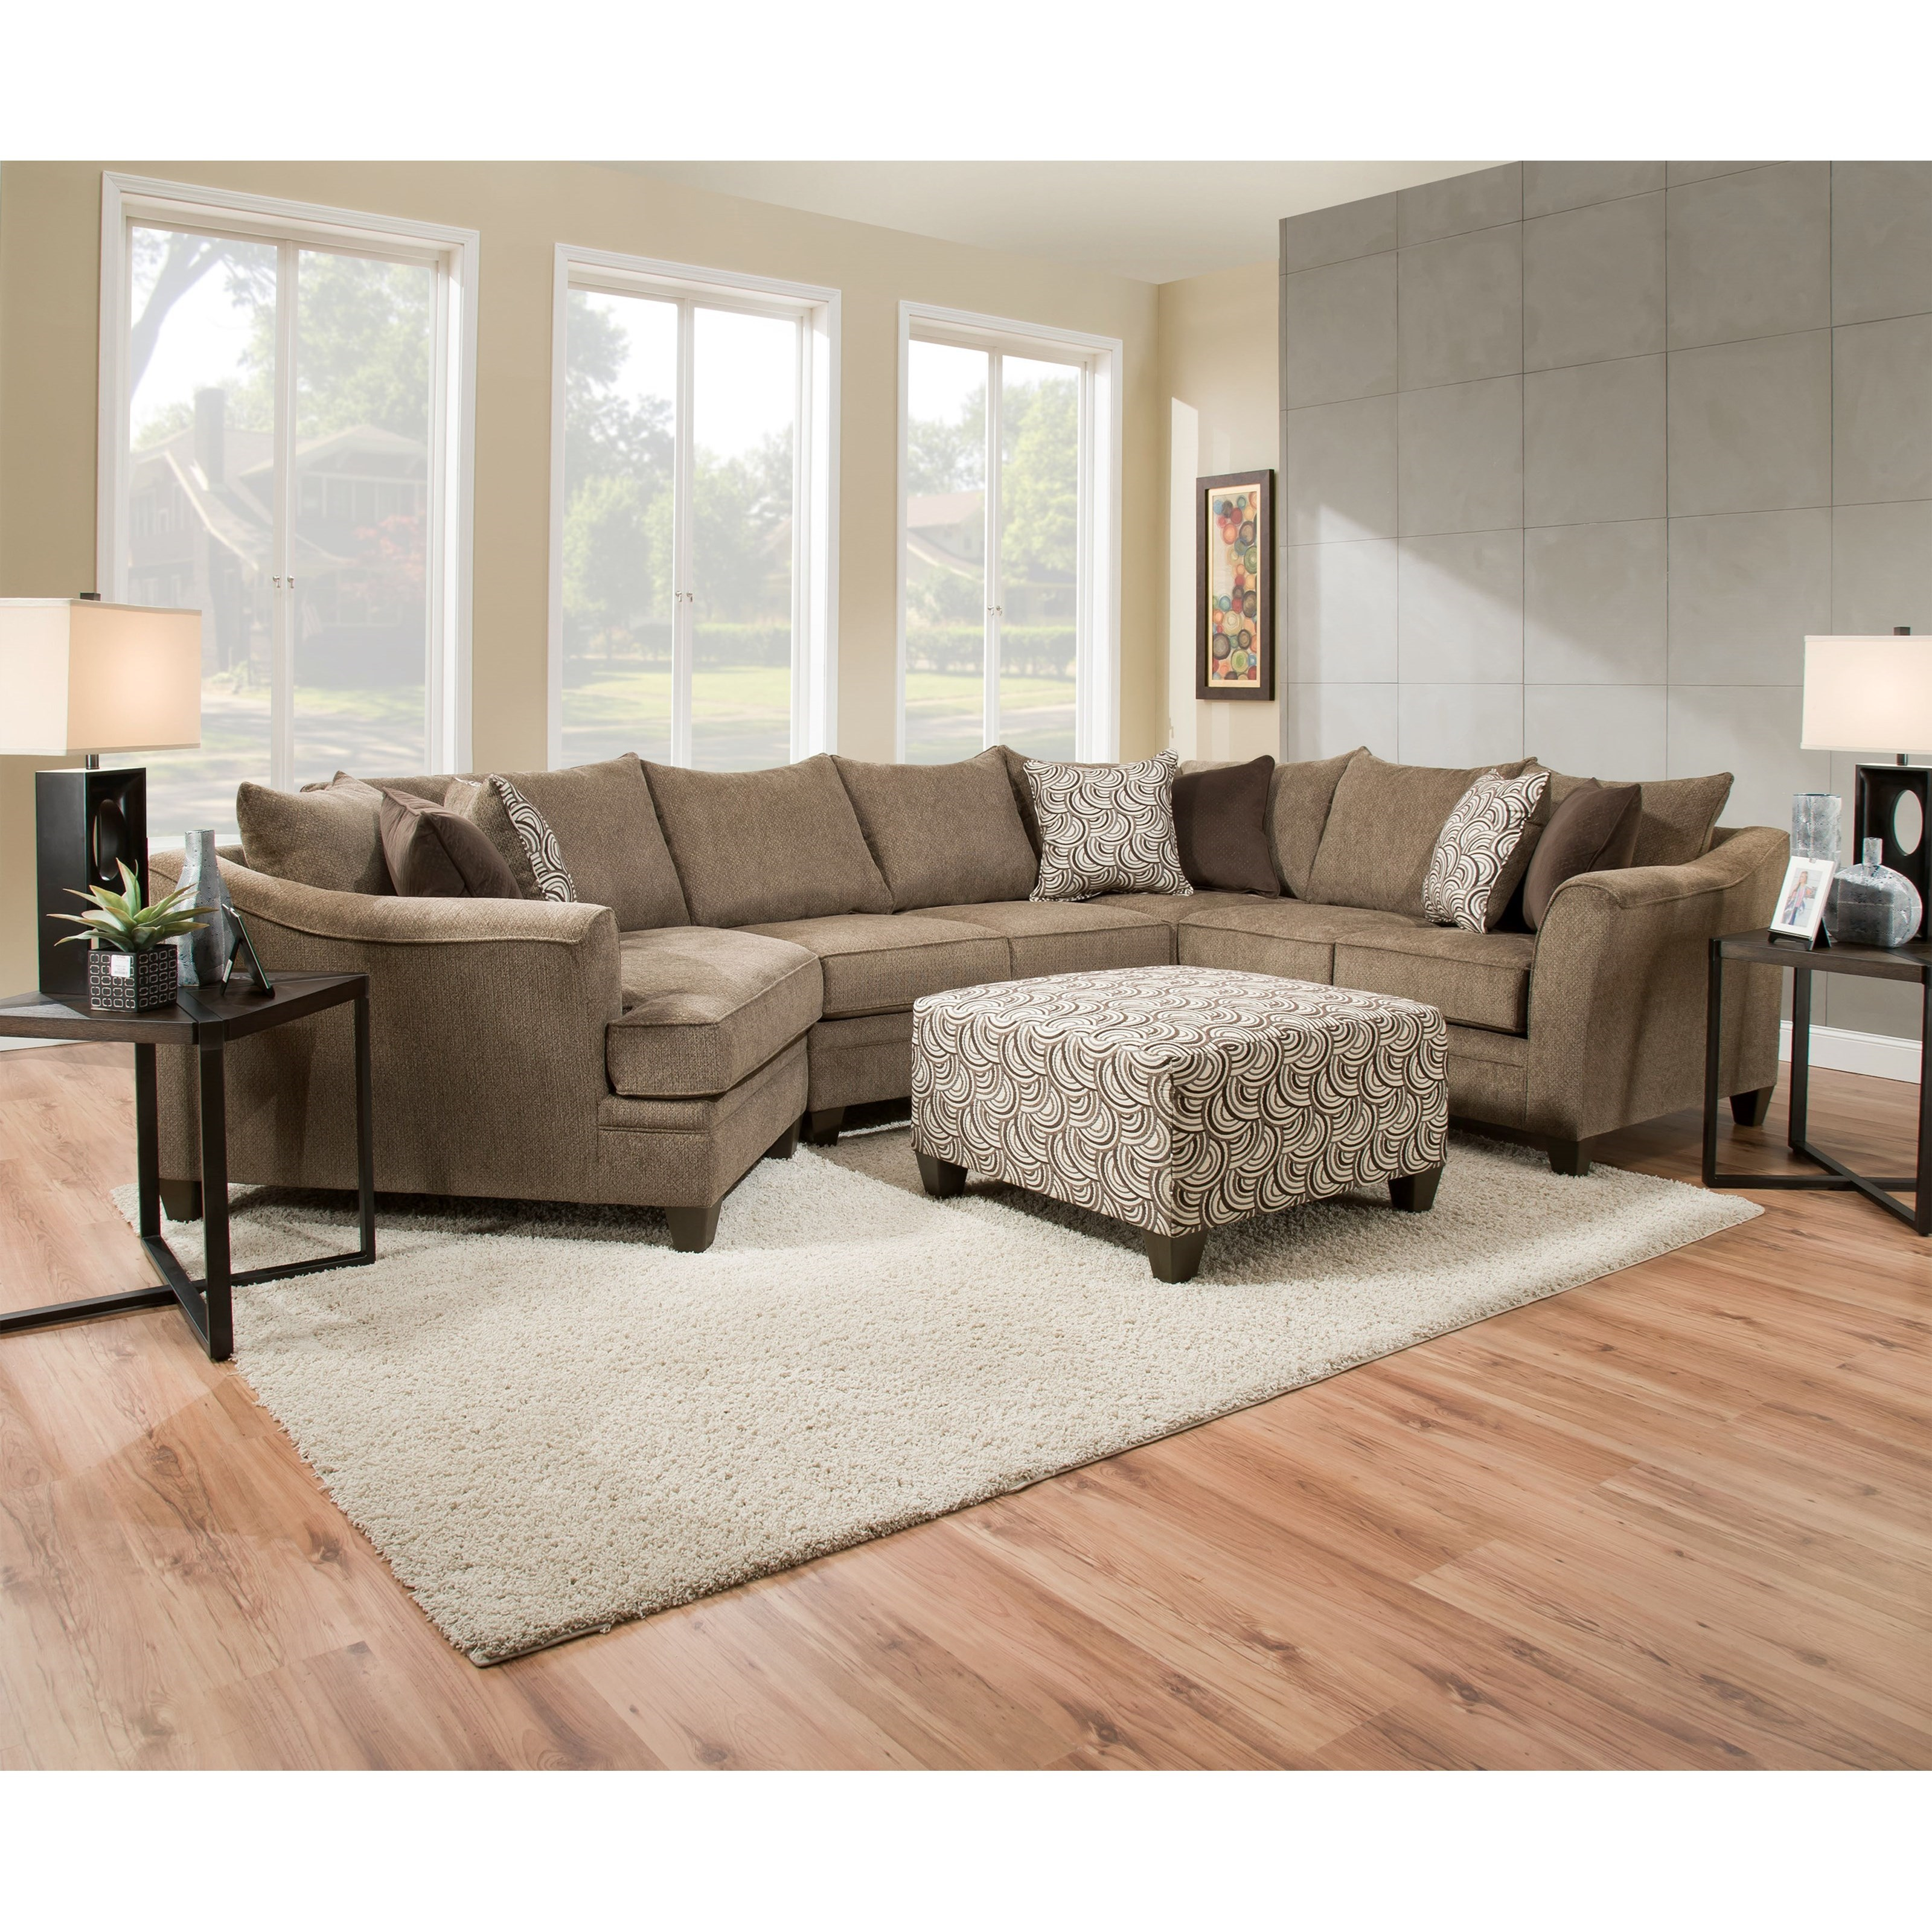 liberty 2 piece sofa and motion loveseat group in grey crate barrel leather simmons upholstery 6485 6485wedge 43armlesslvseat 43sofa